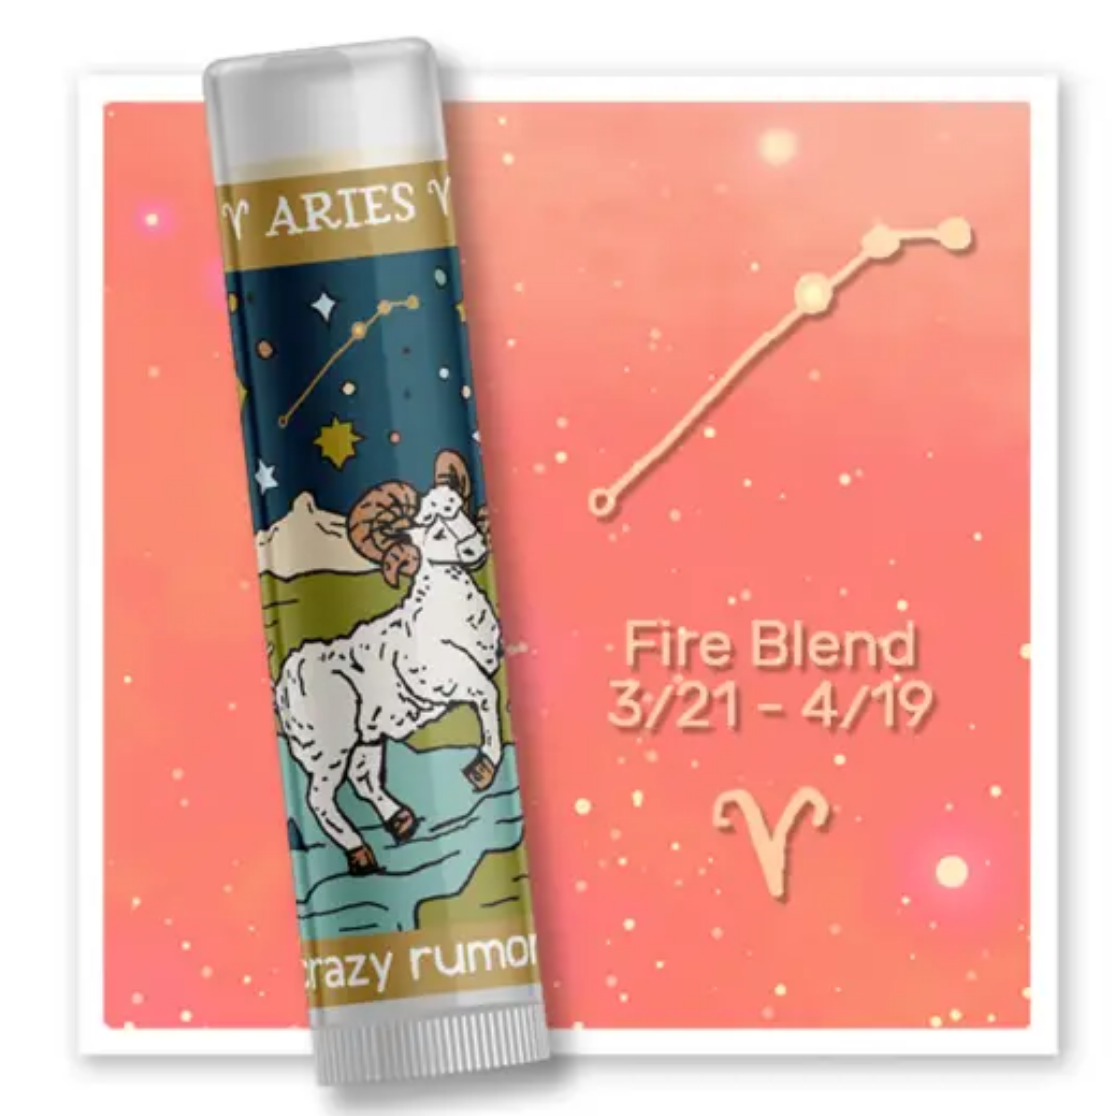 Crazy Rumors Aries - Fire Blend Lip Balm